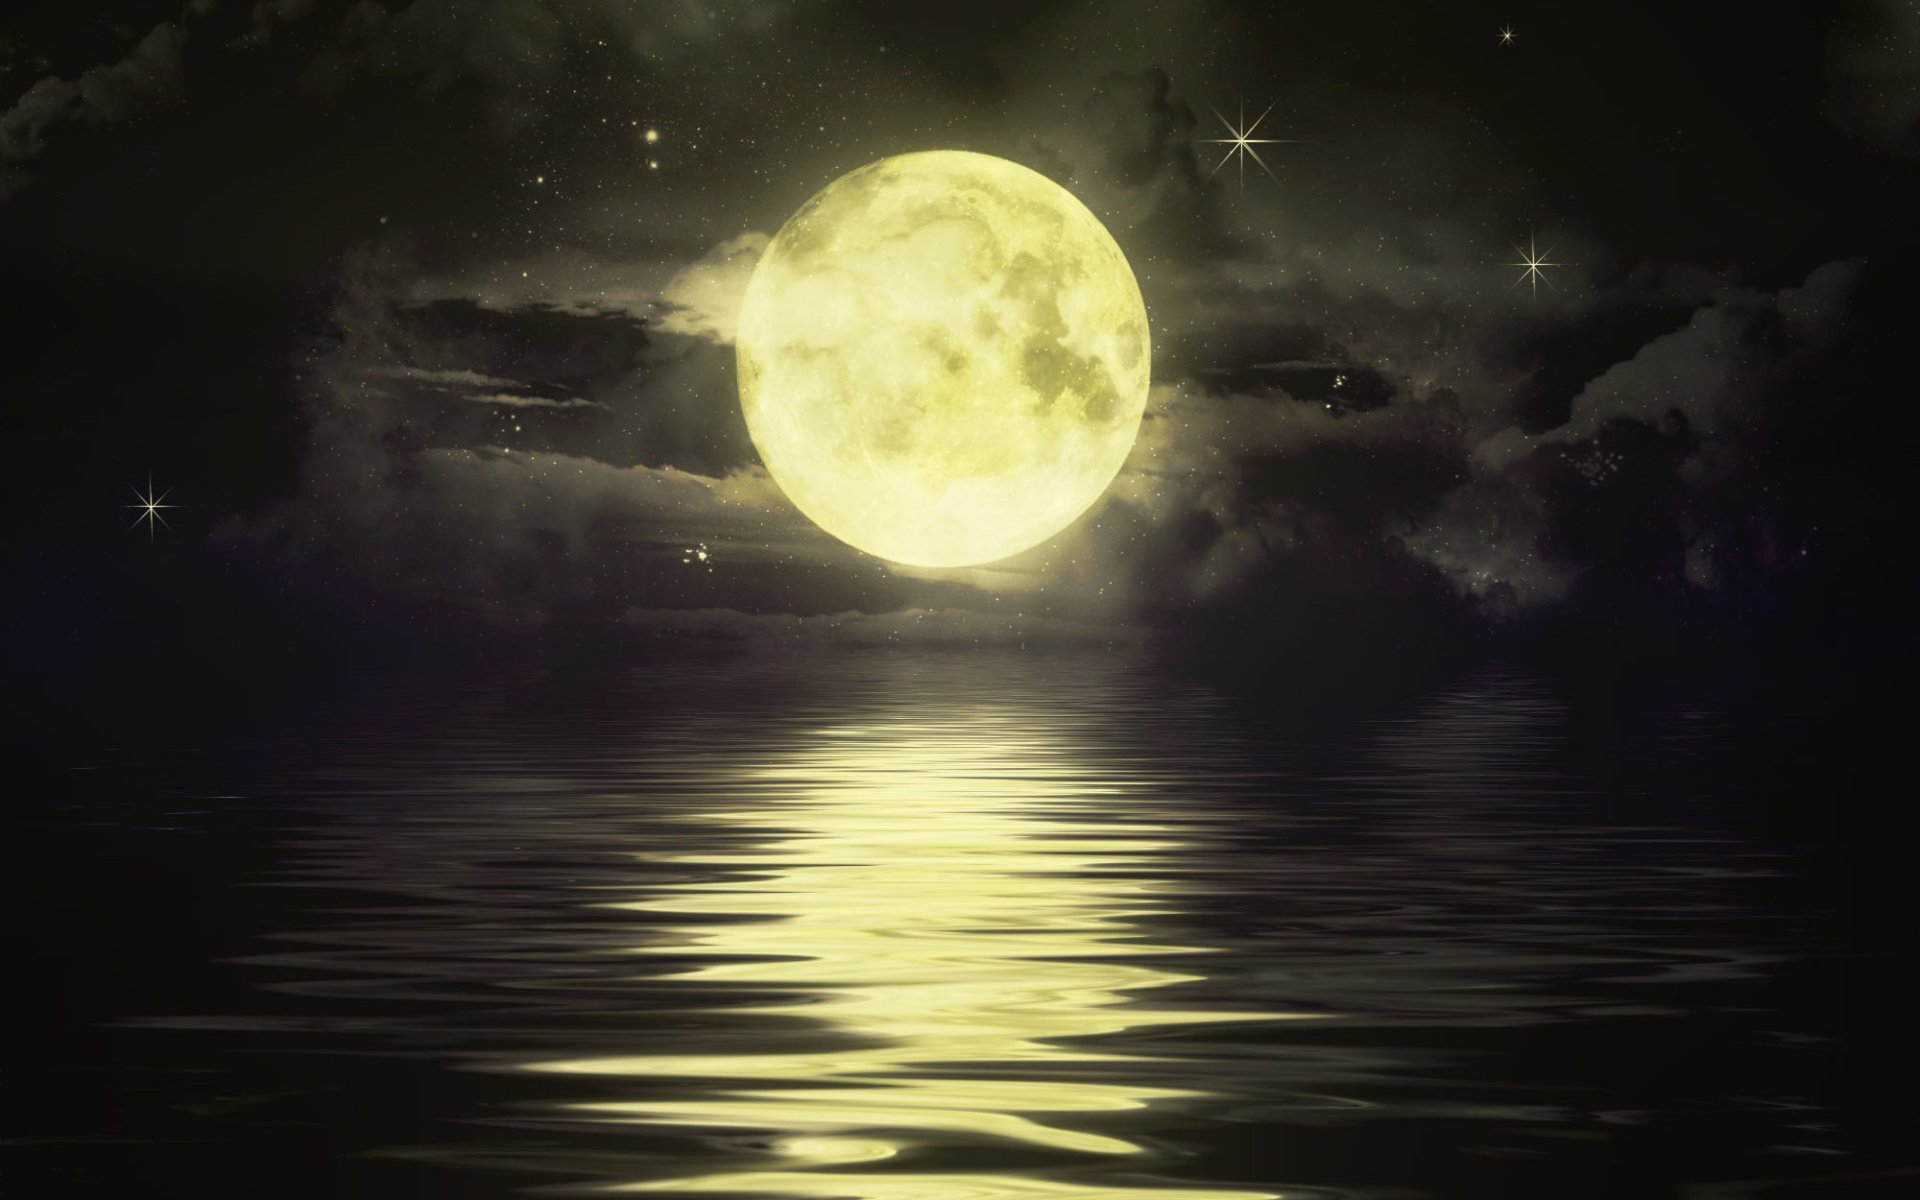 Artistic - Nature  Moonlight Wallpaper